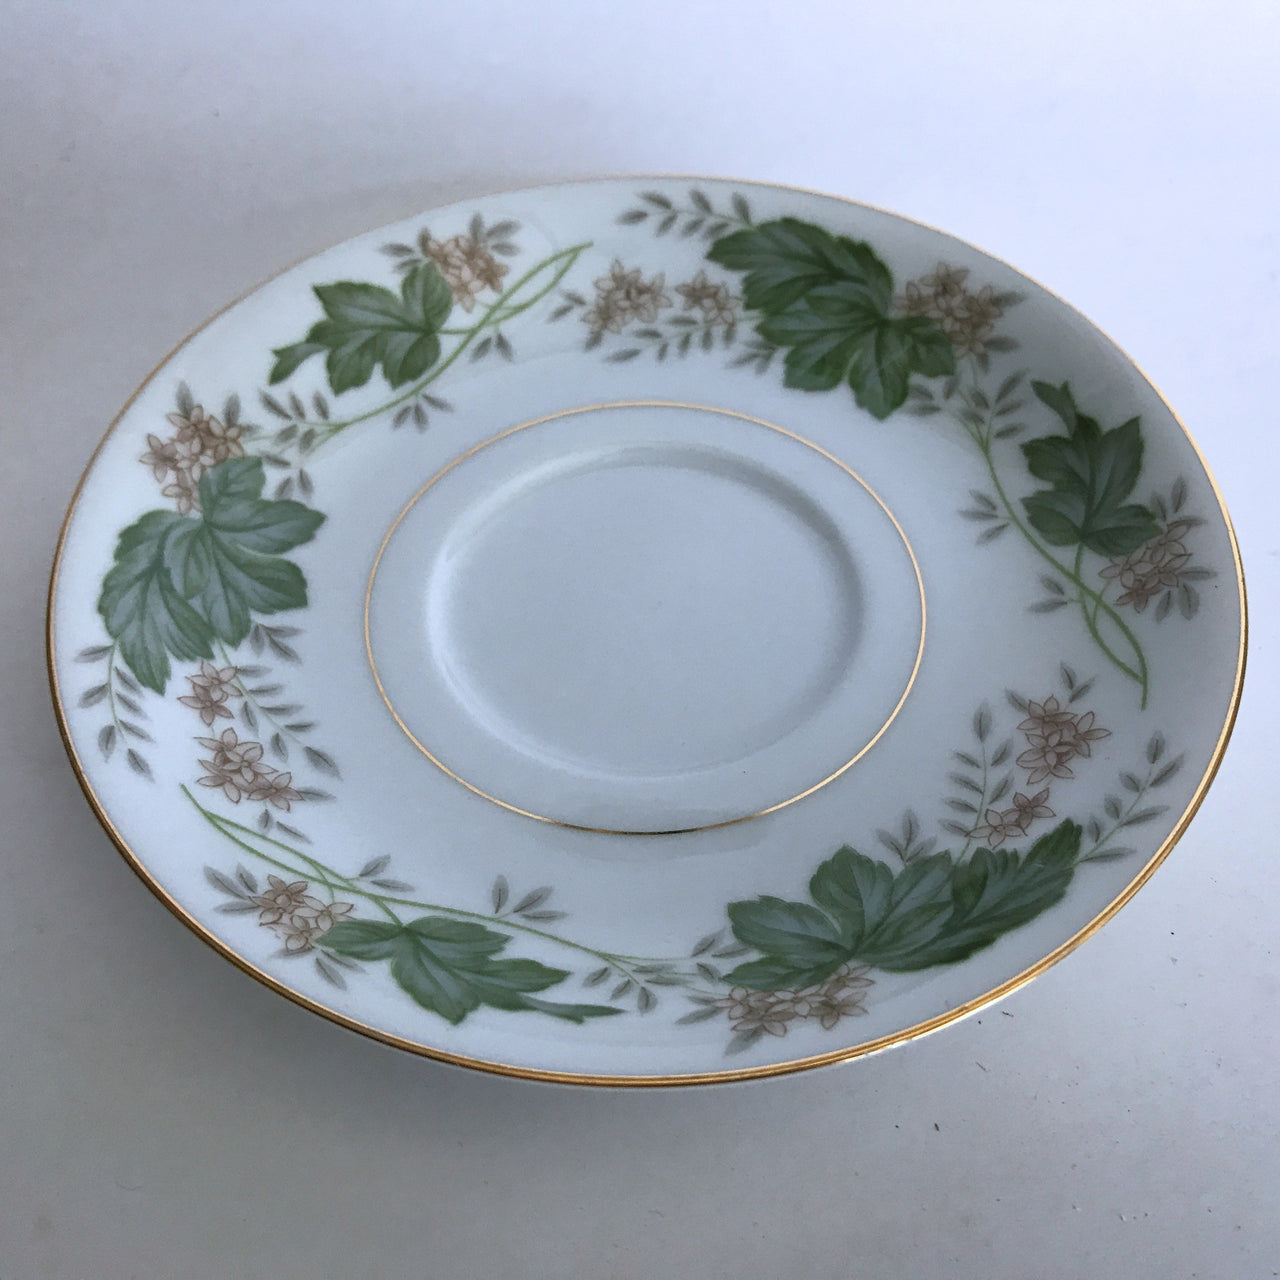 Vintage Noritake Daphne 5312 Saucer Tan Flowers Green Silver Leaves Gold